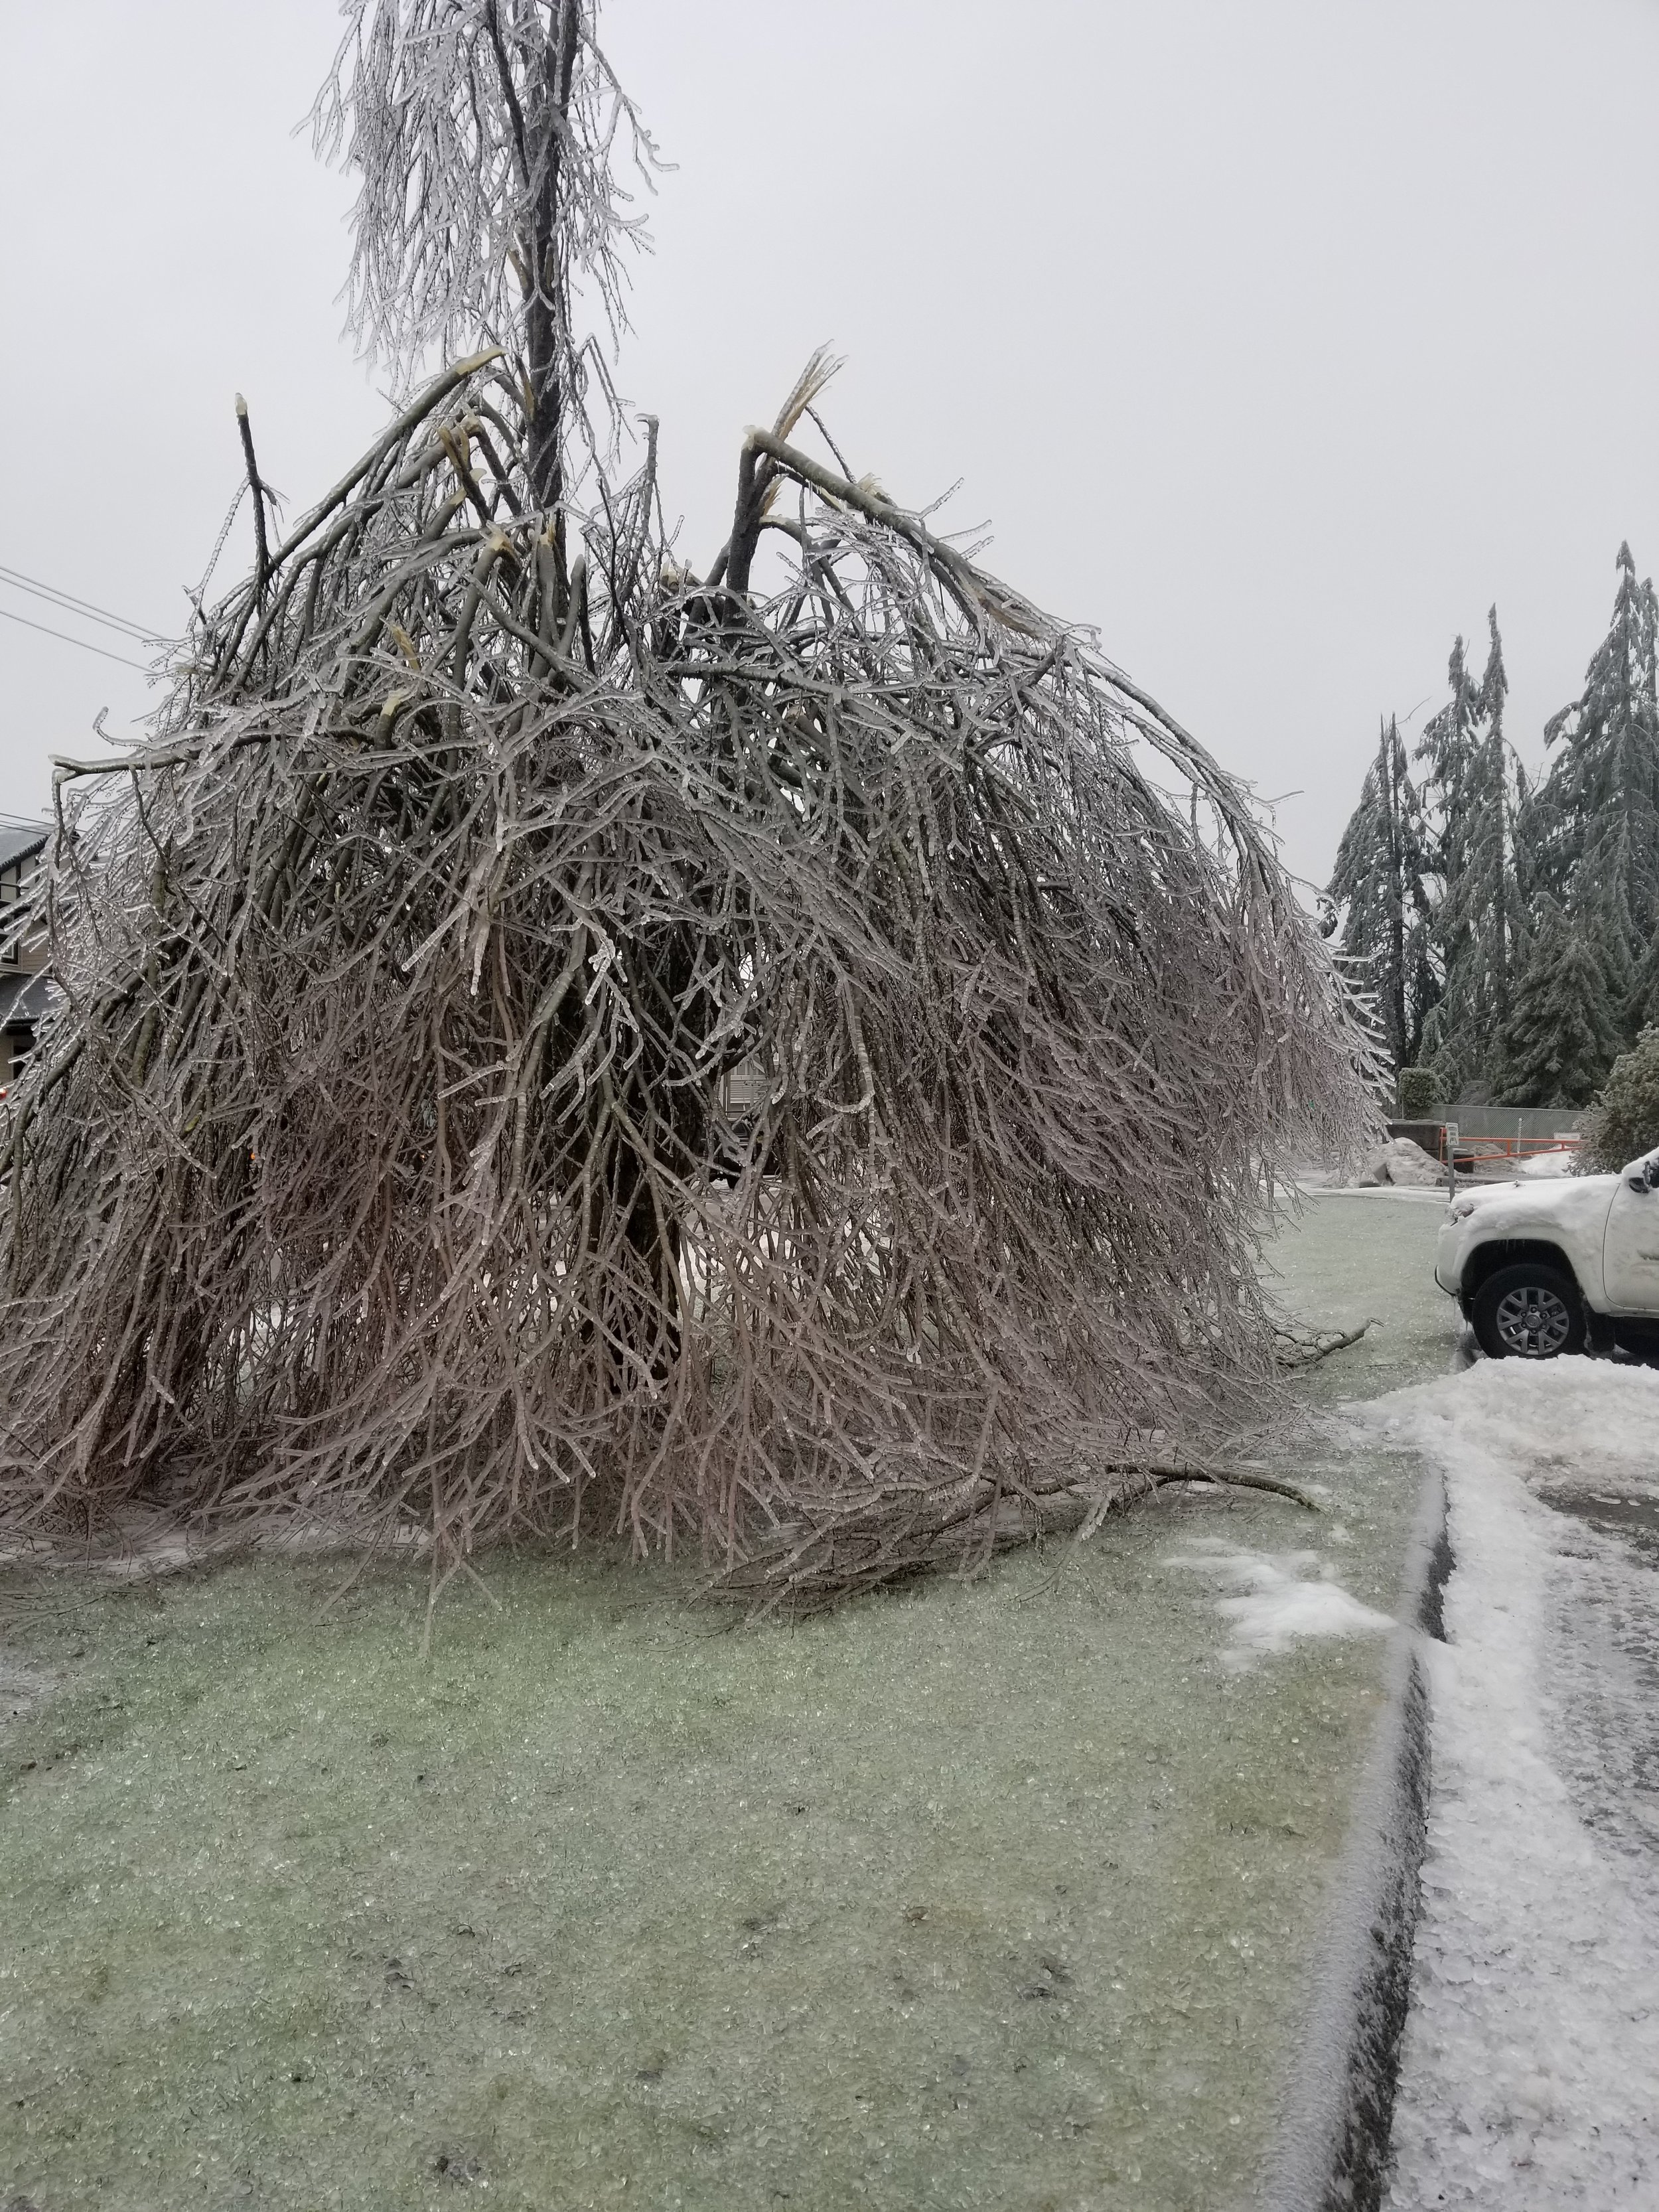 Emergency Services - We deal with all types of storm damaged trees including trees on structures. During these events it can be difficult to get in touch with us as the call volume is high. Please leave a message describing the situation in detail as we do check our messages and try to prioritize our calls.